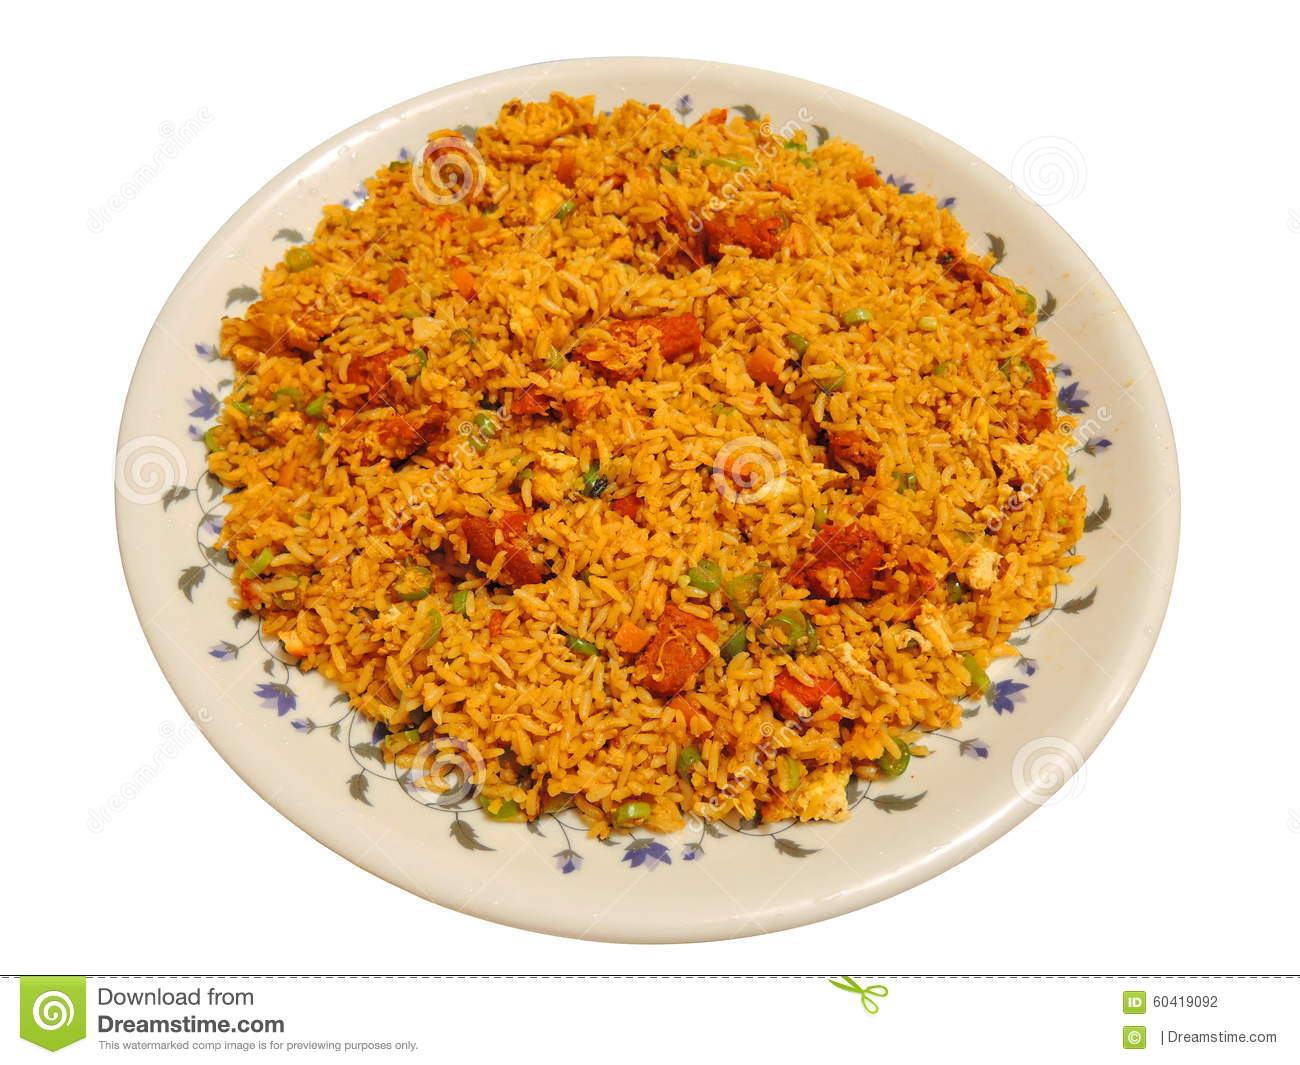 Indian Dish - Chicken Fried Rice Stock Photo - Image: 60419092